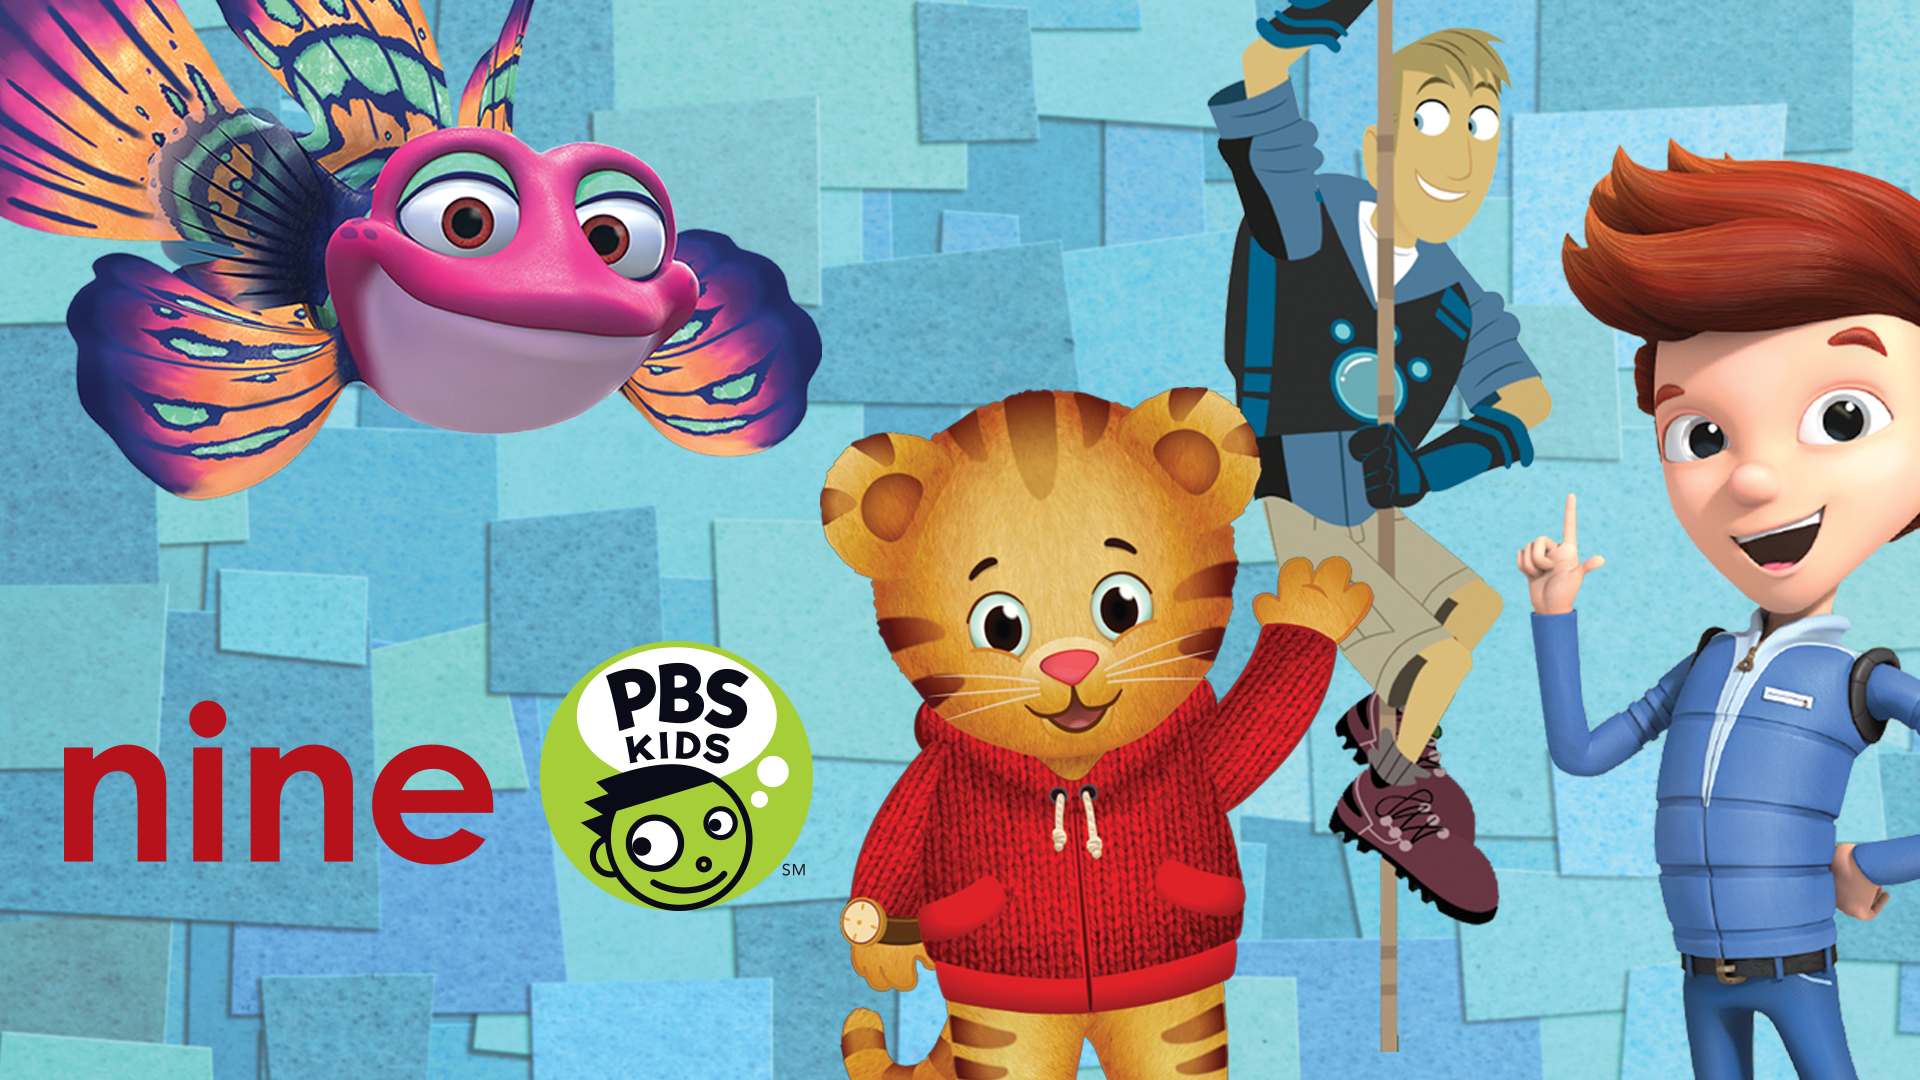 Watch the 24/7 Nine PBS KIDS Channel NOW!